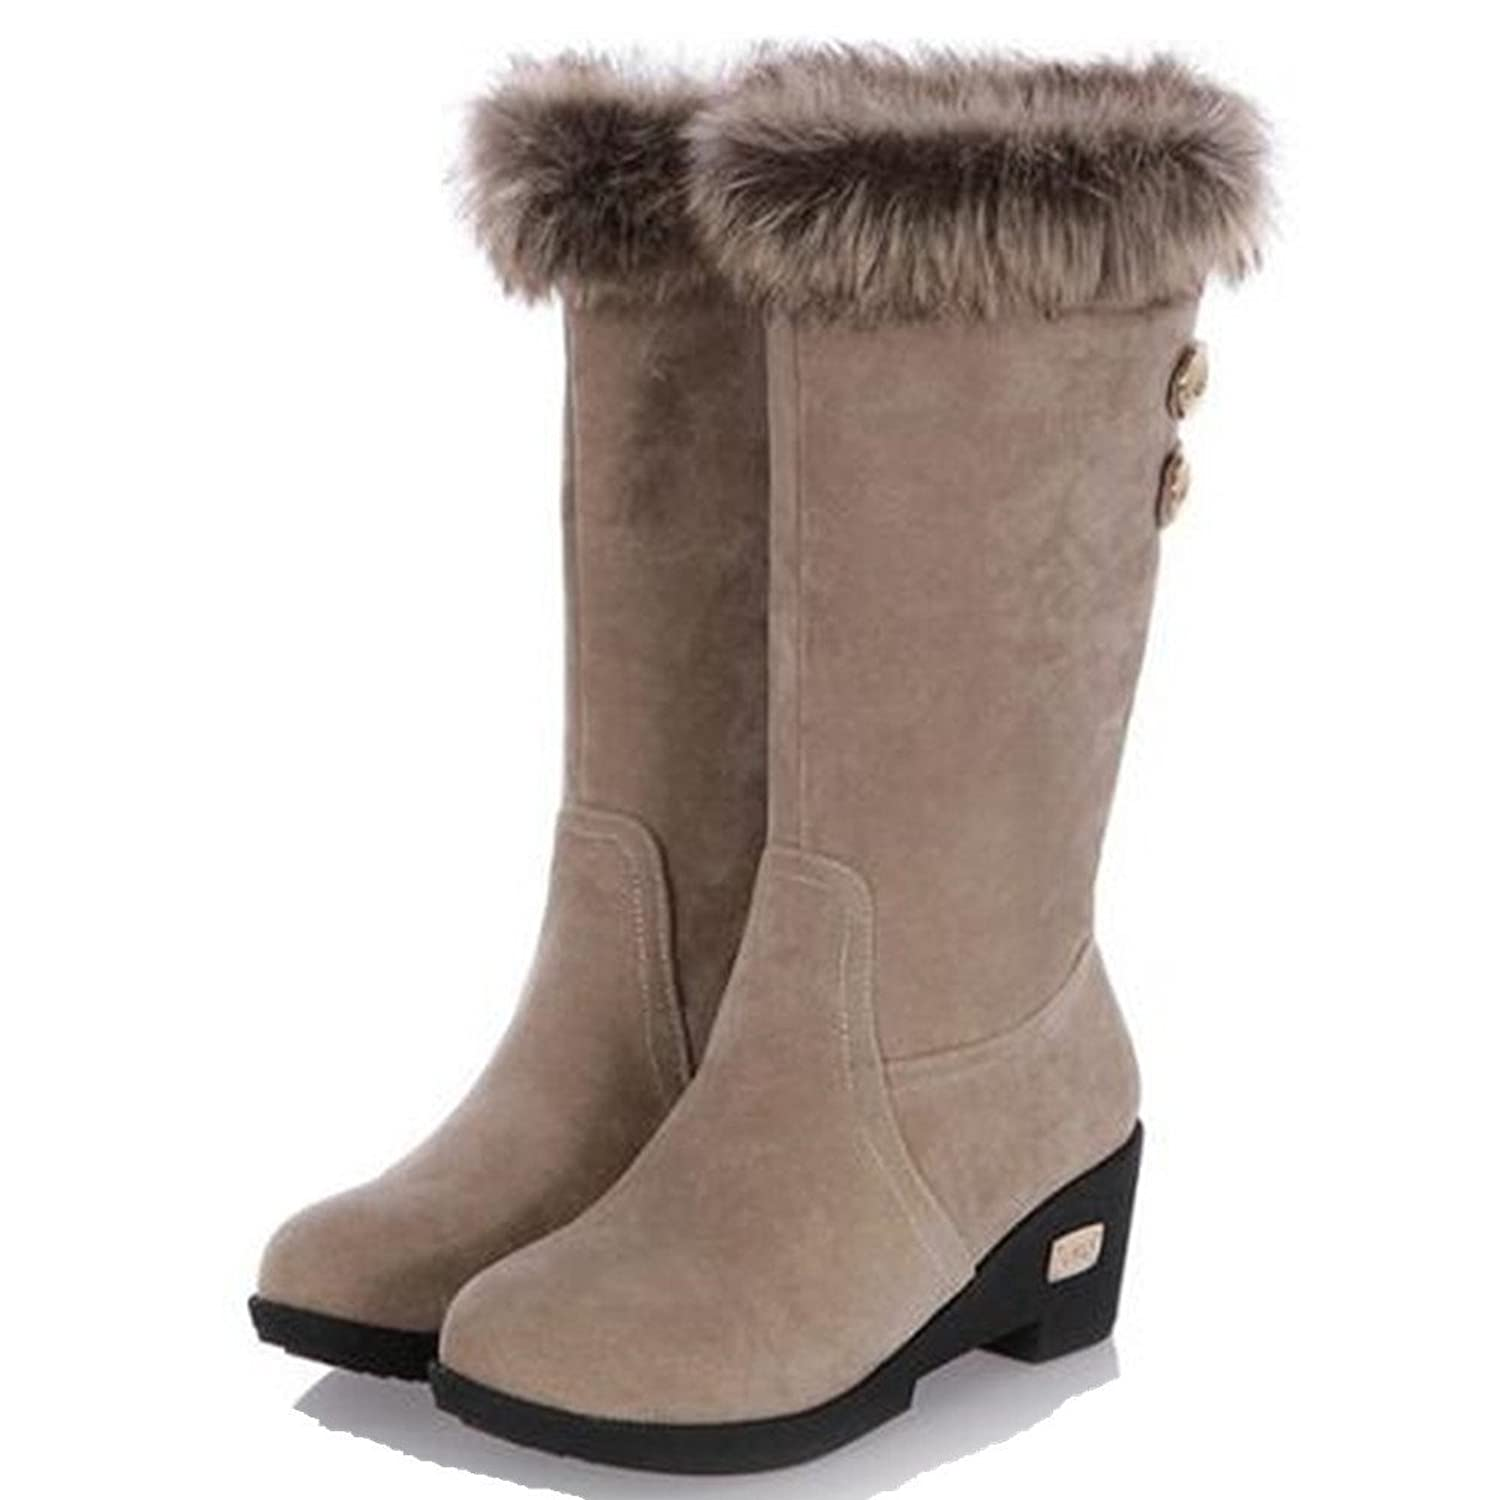 Women's Winter Warm Fashion Nubuck Thick Rabbit Hair Platform Mid Chunky Heel Cold Weather Snow Boots